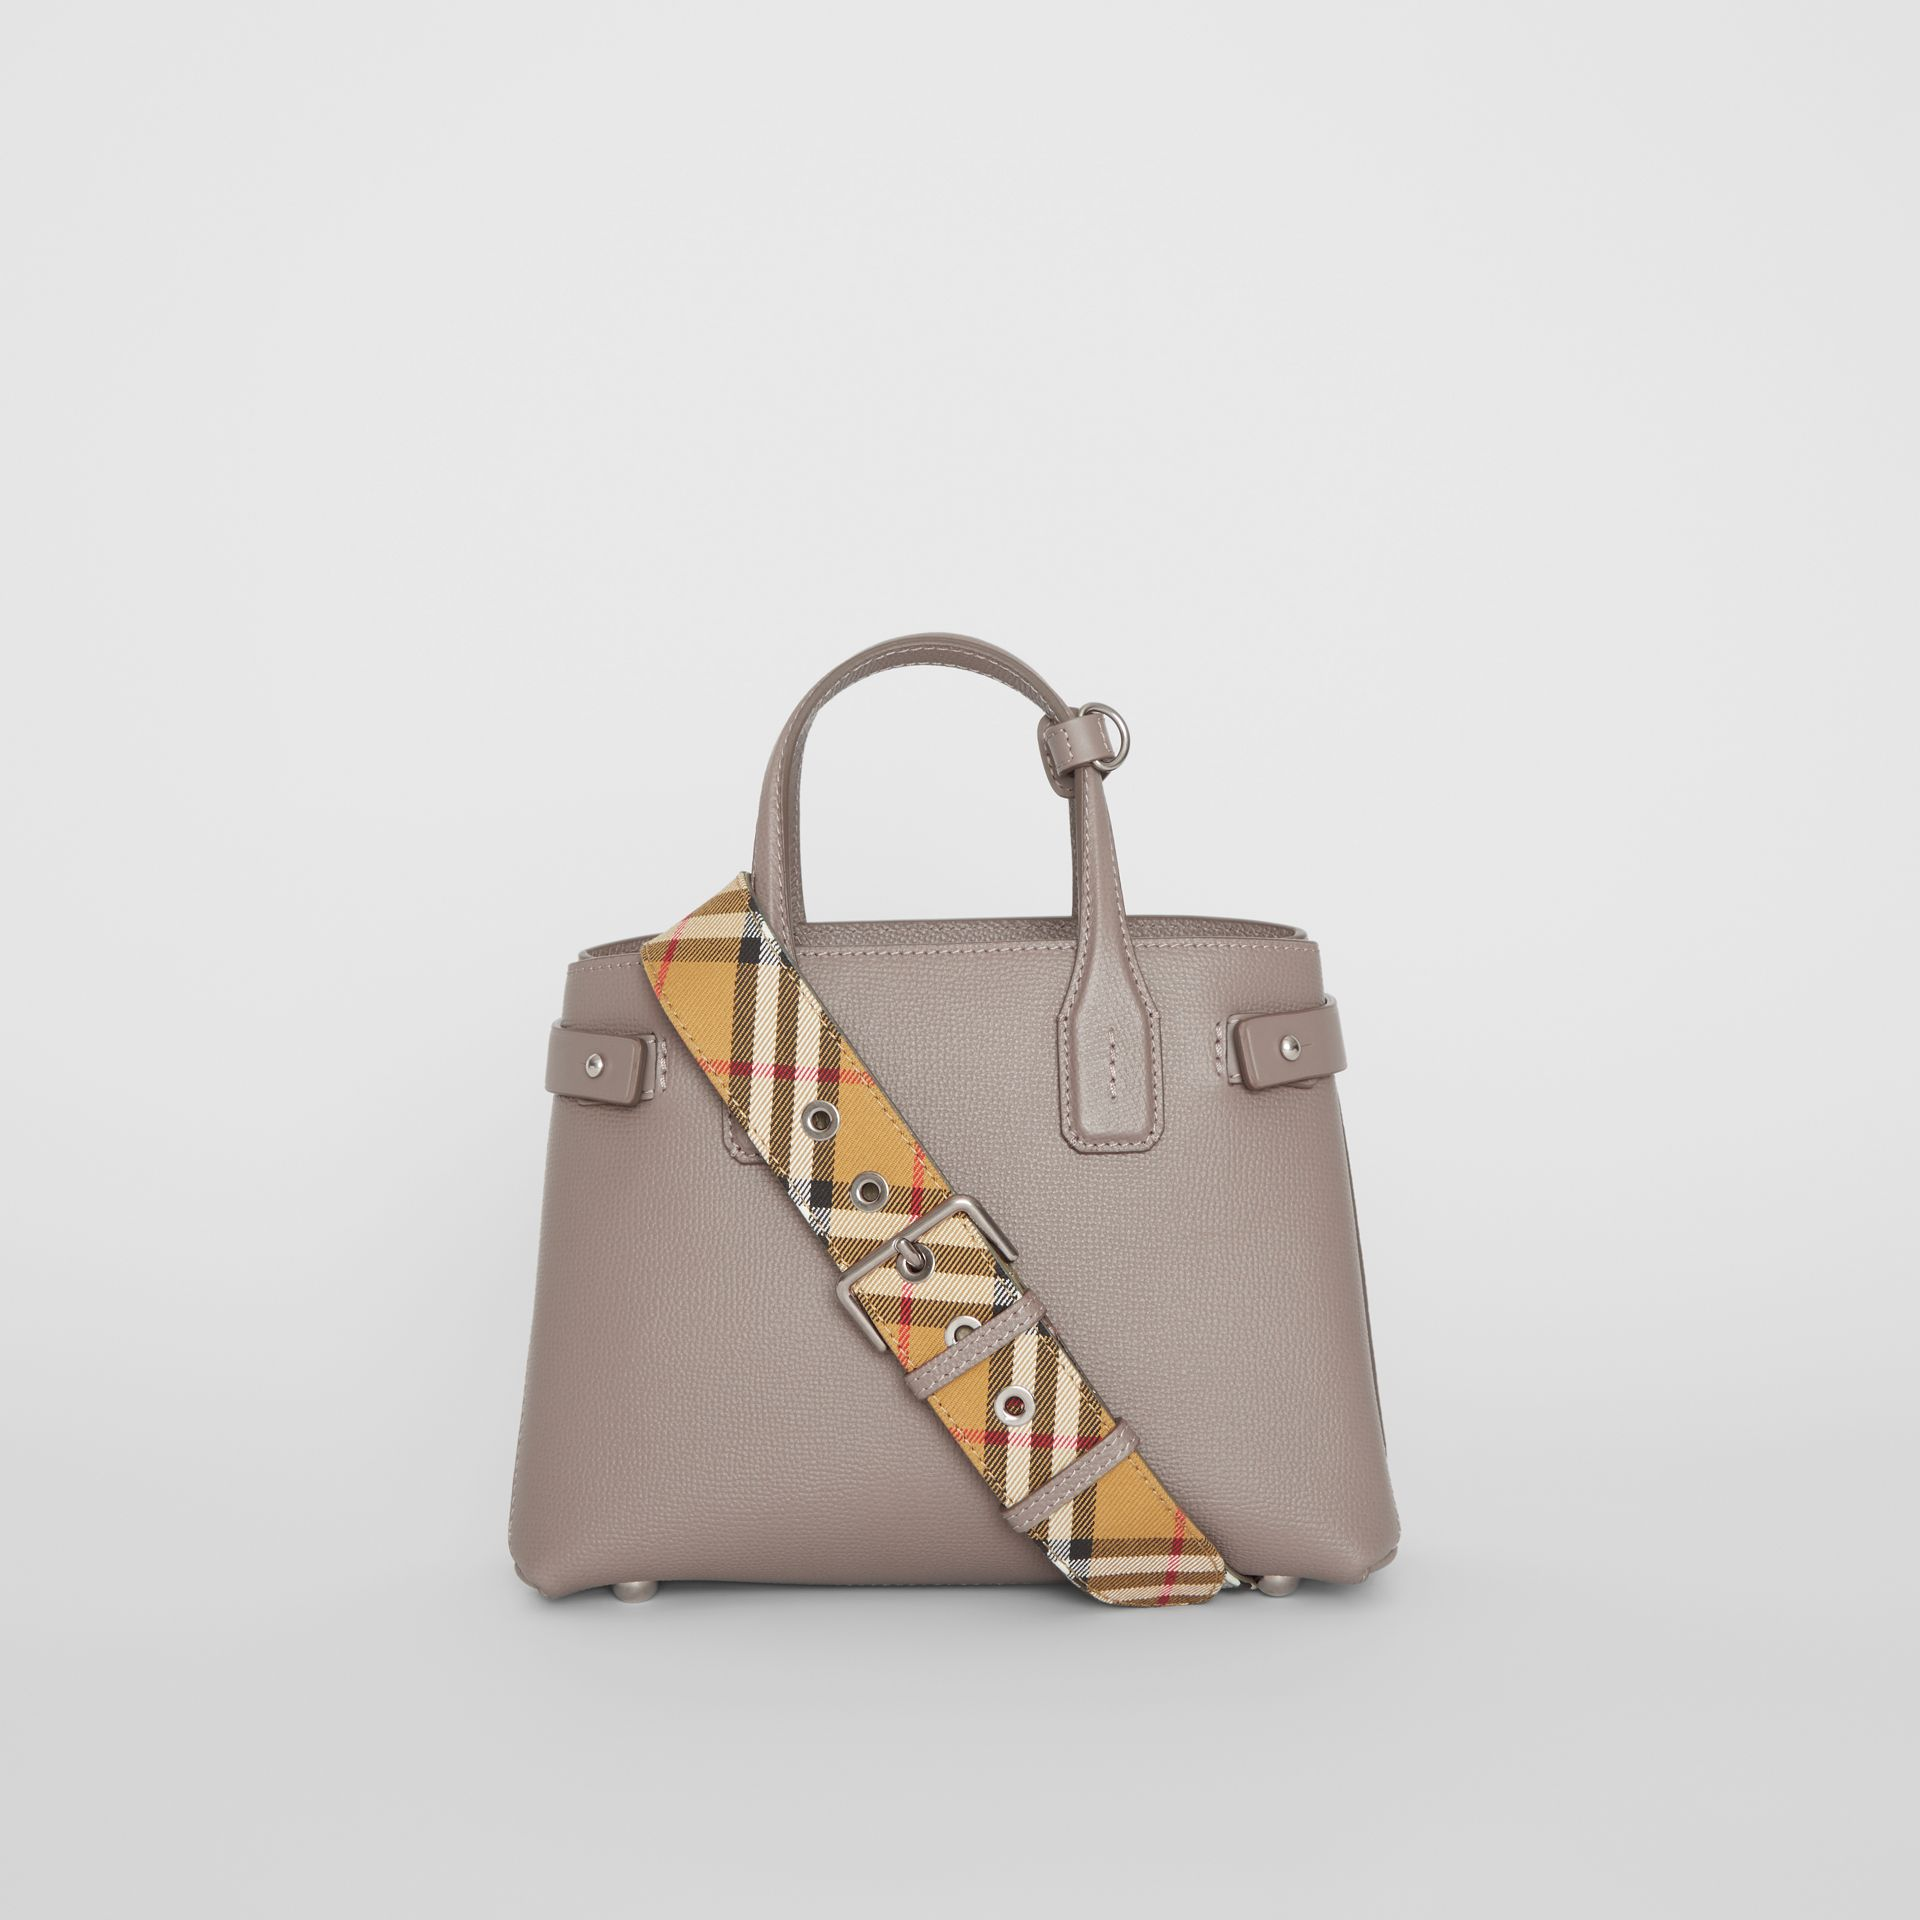 Petit sac The Banner en cuir avec Vintage check (Brun Taupe) - Femme | Burberry - photo de la galerie 7